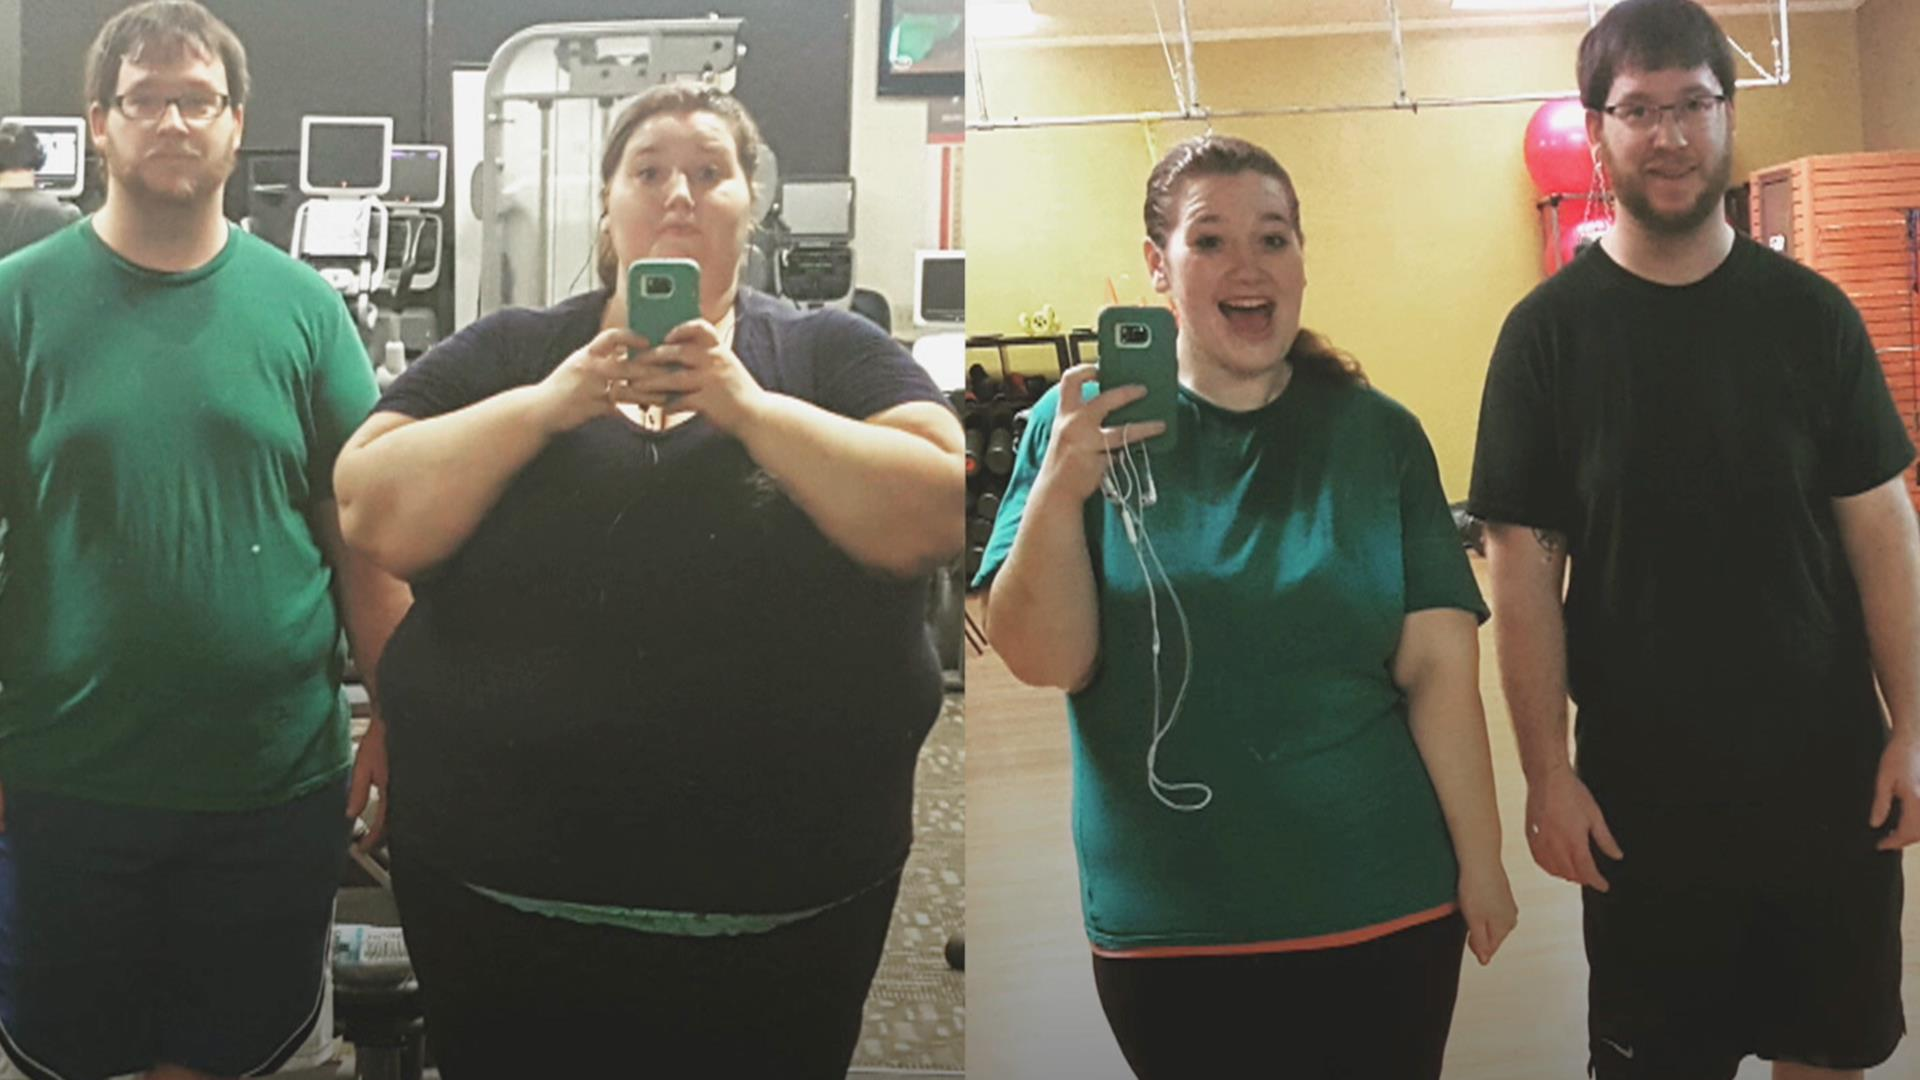 Dating after massive weight loss